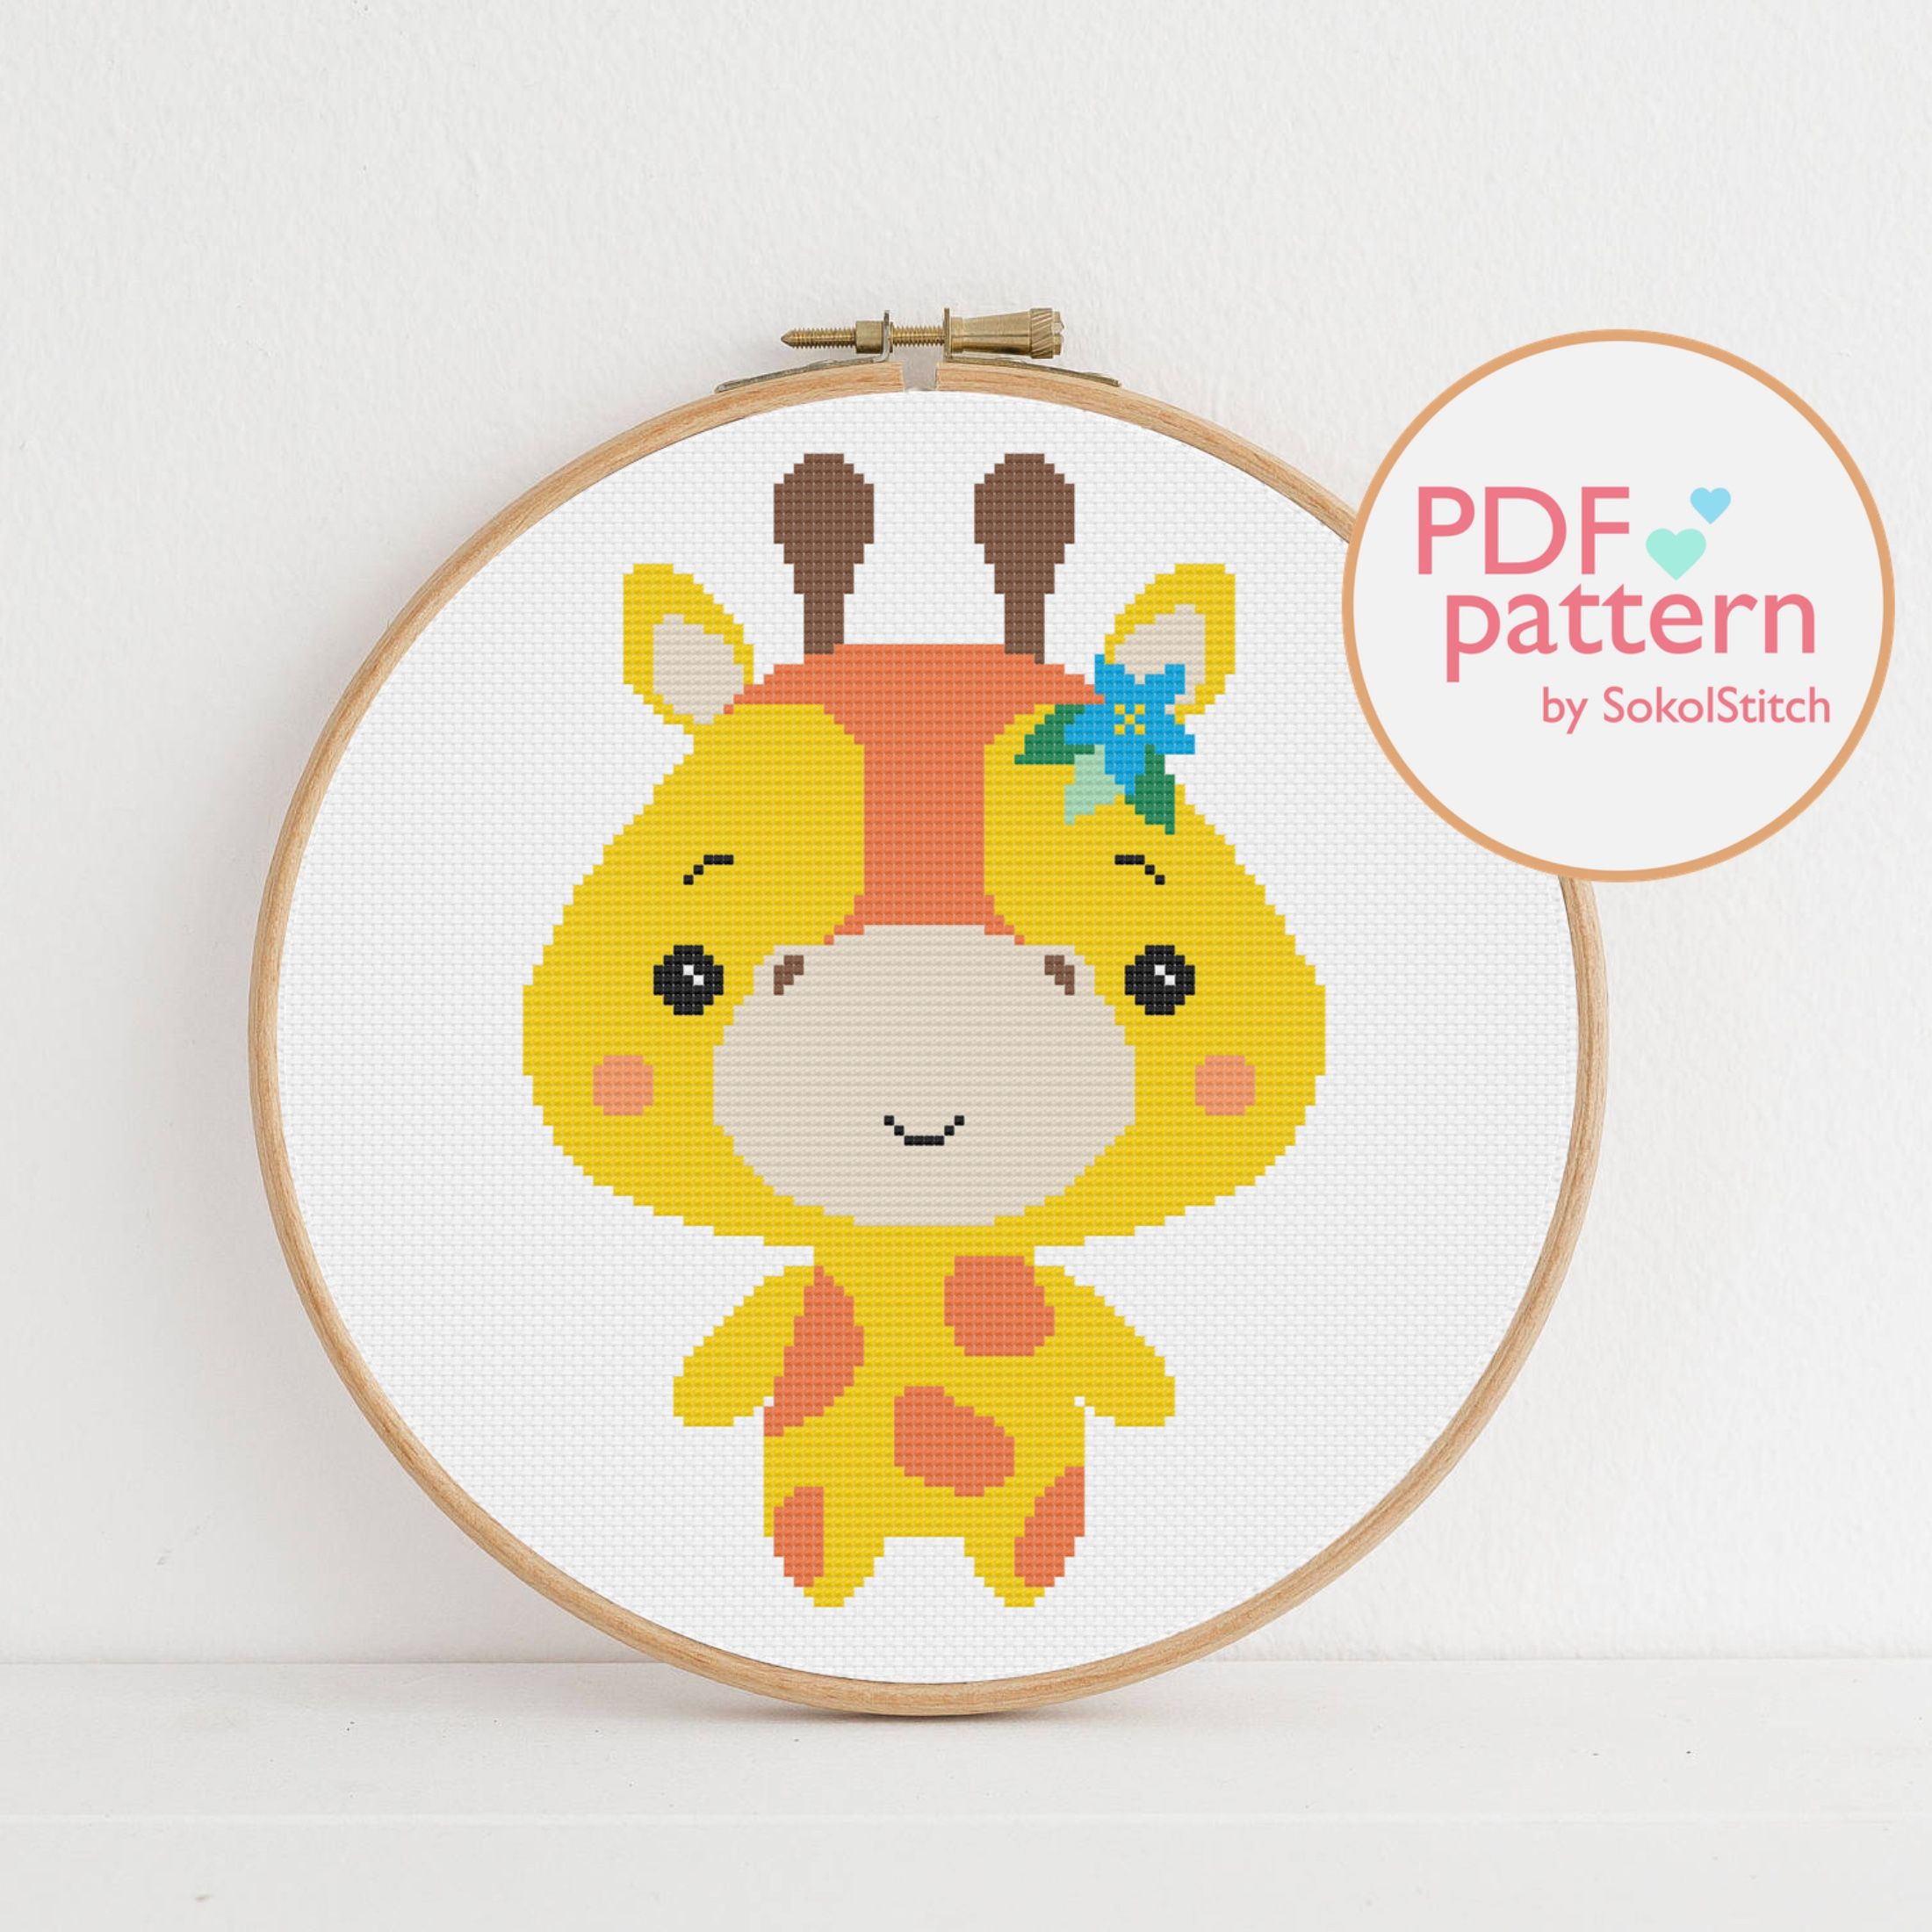 Giraffe Cross Stitch Pdf Pattern African Animal Easy Etsy In